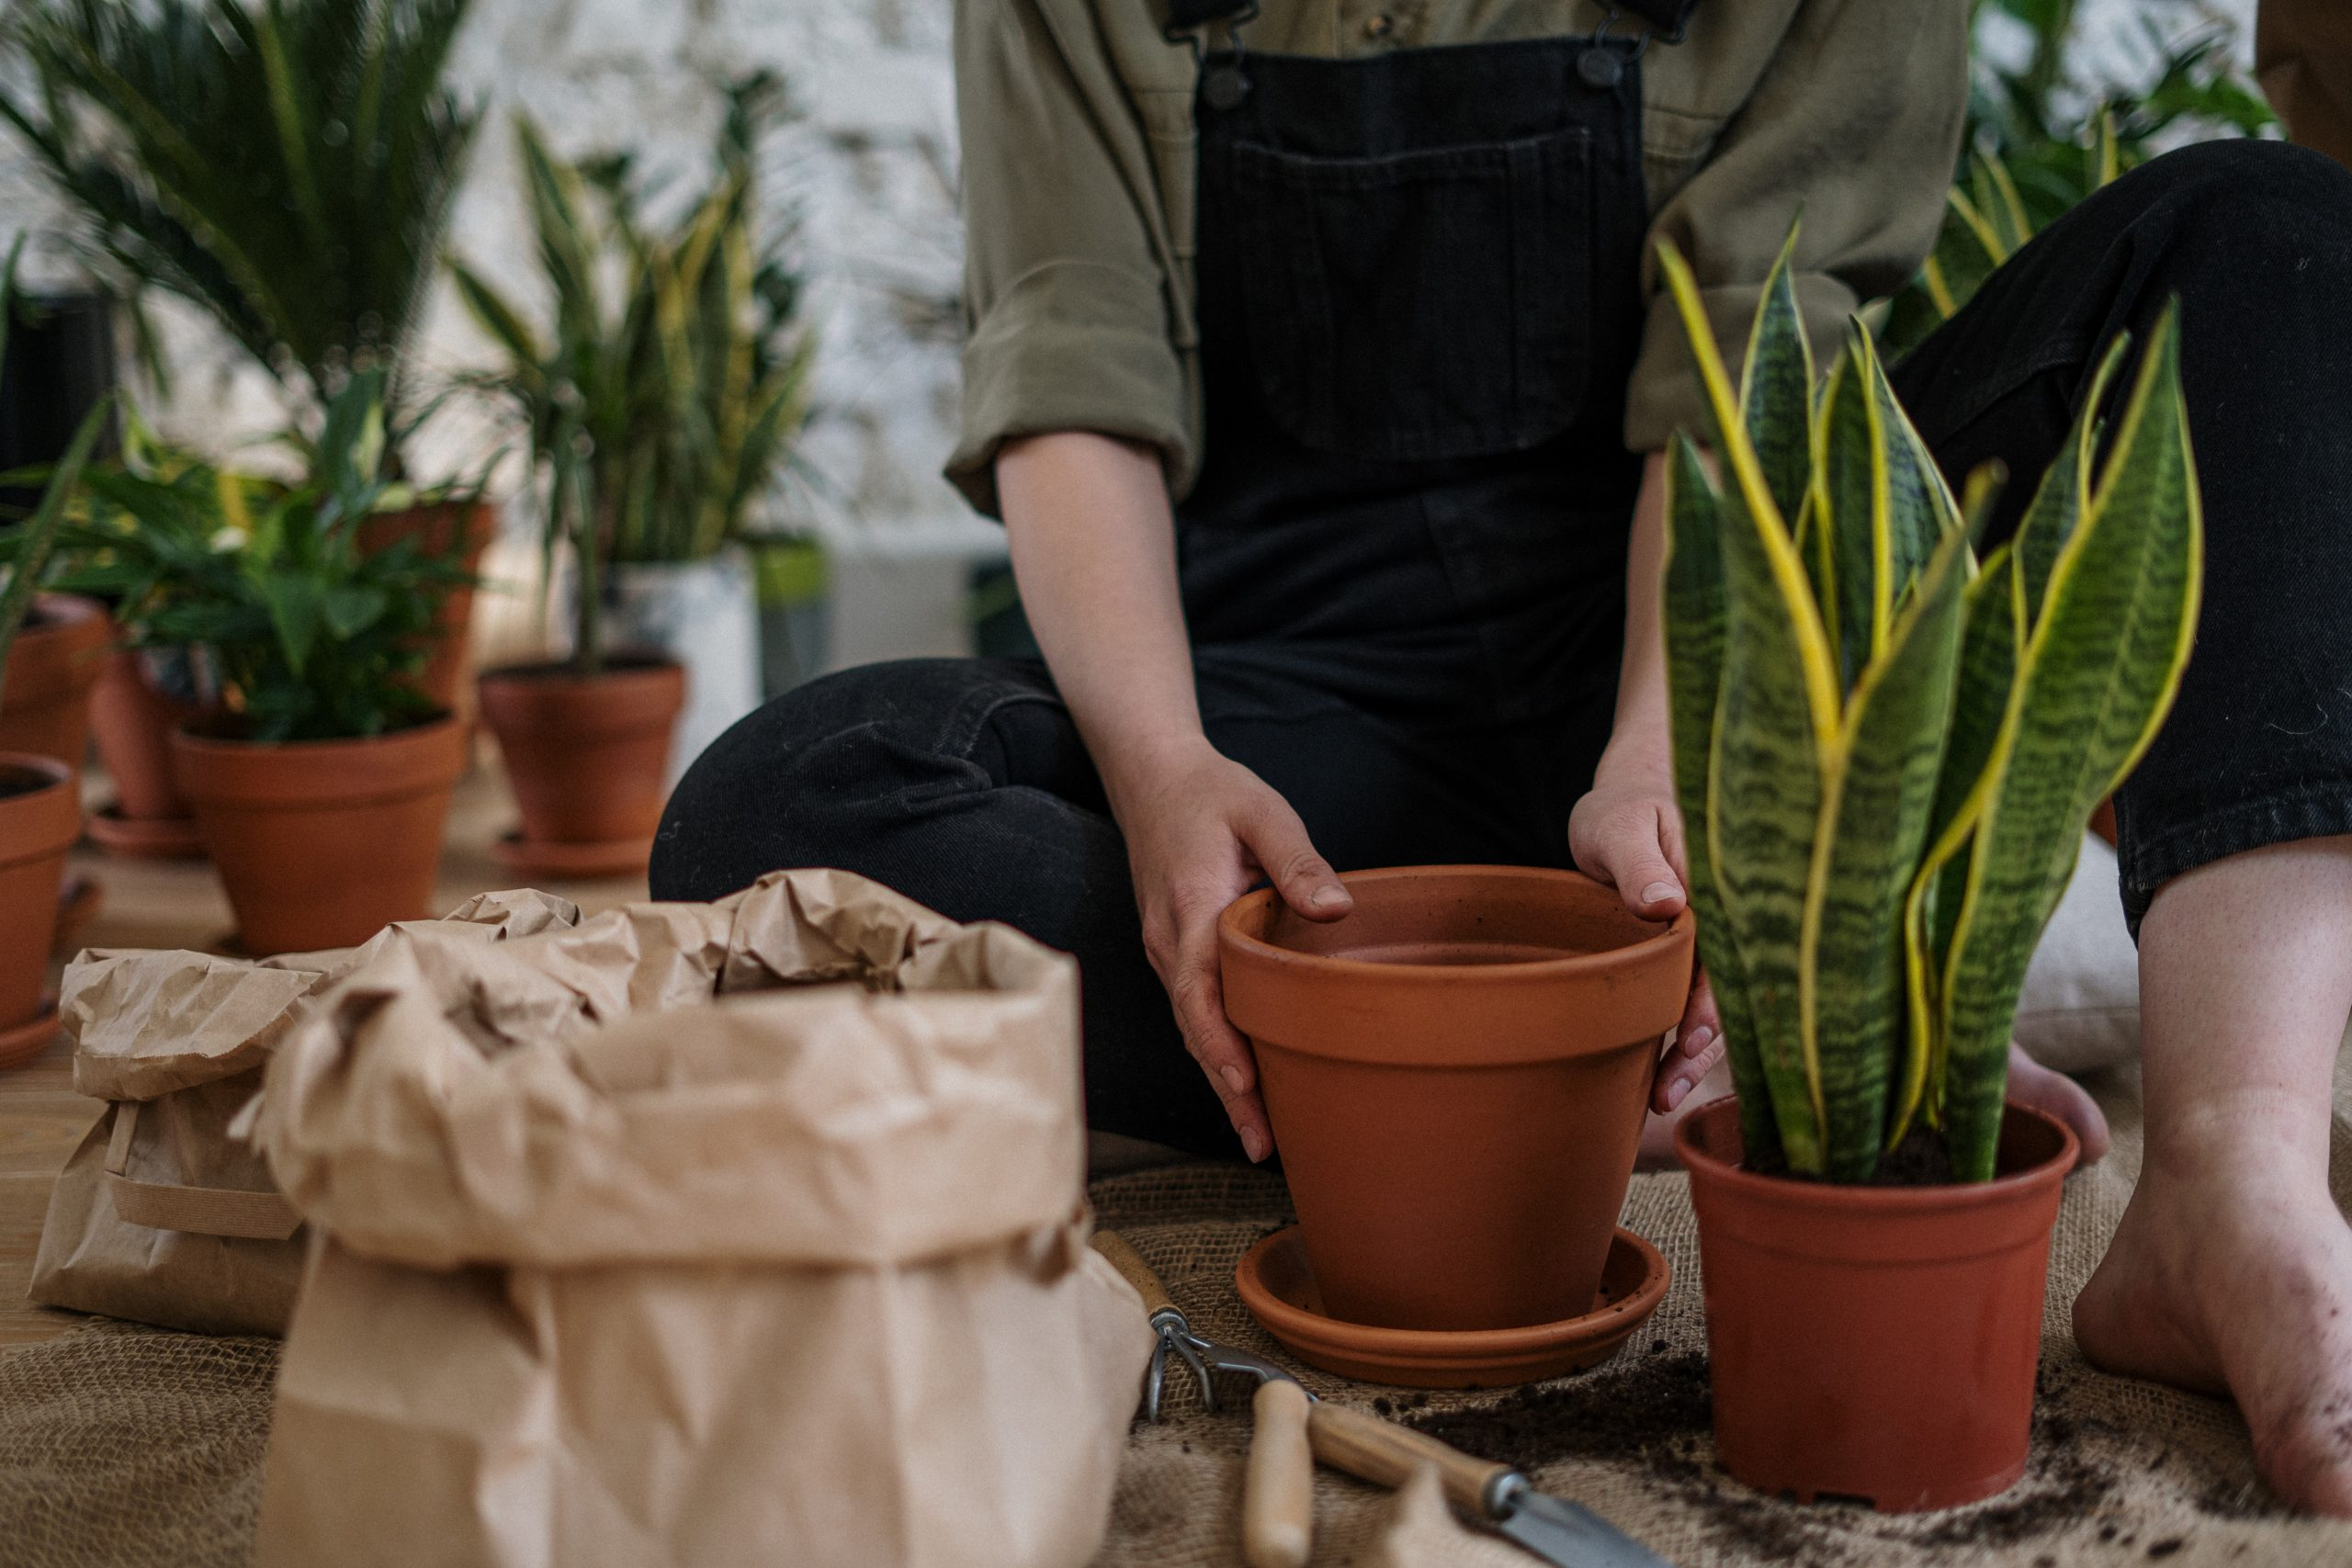 Person on overalls putting plants into pots